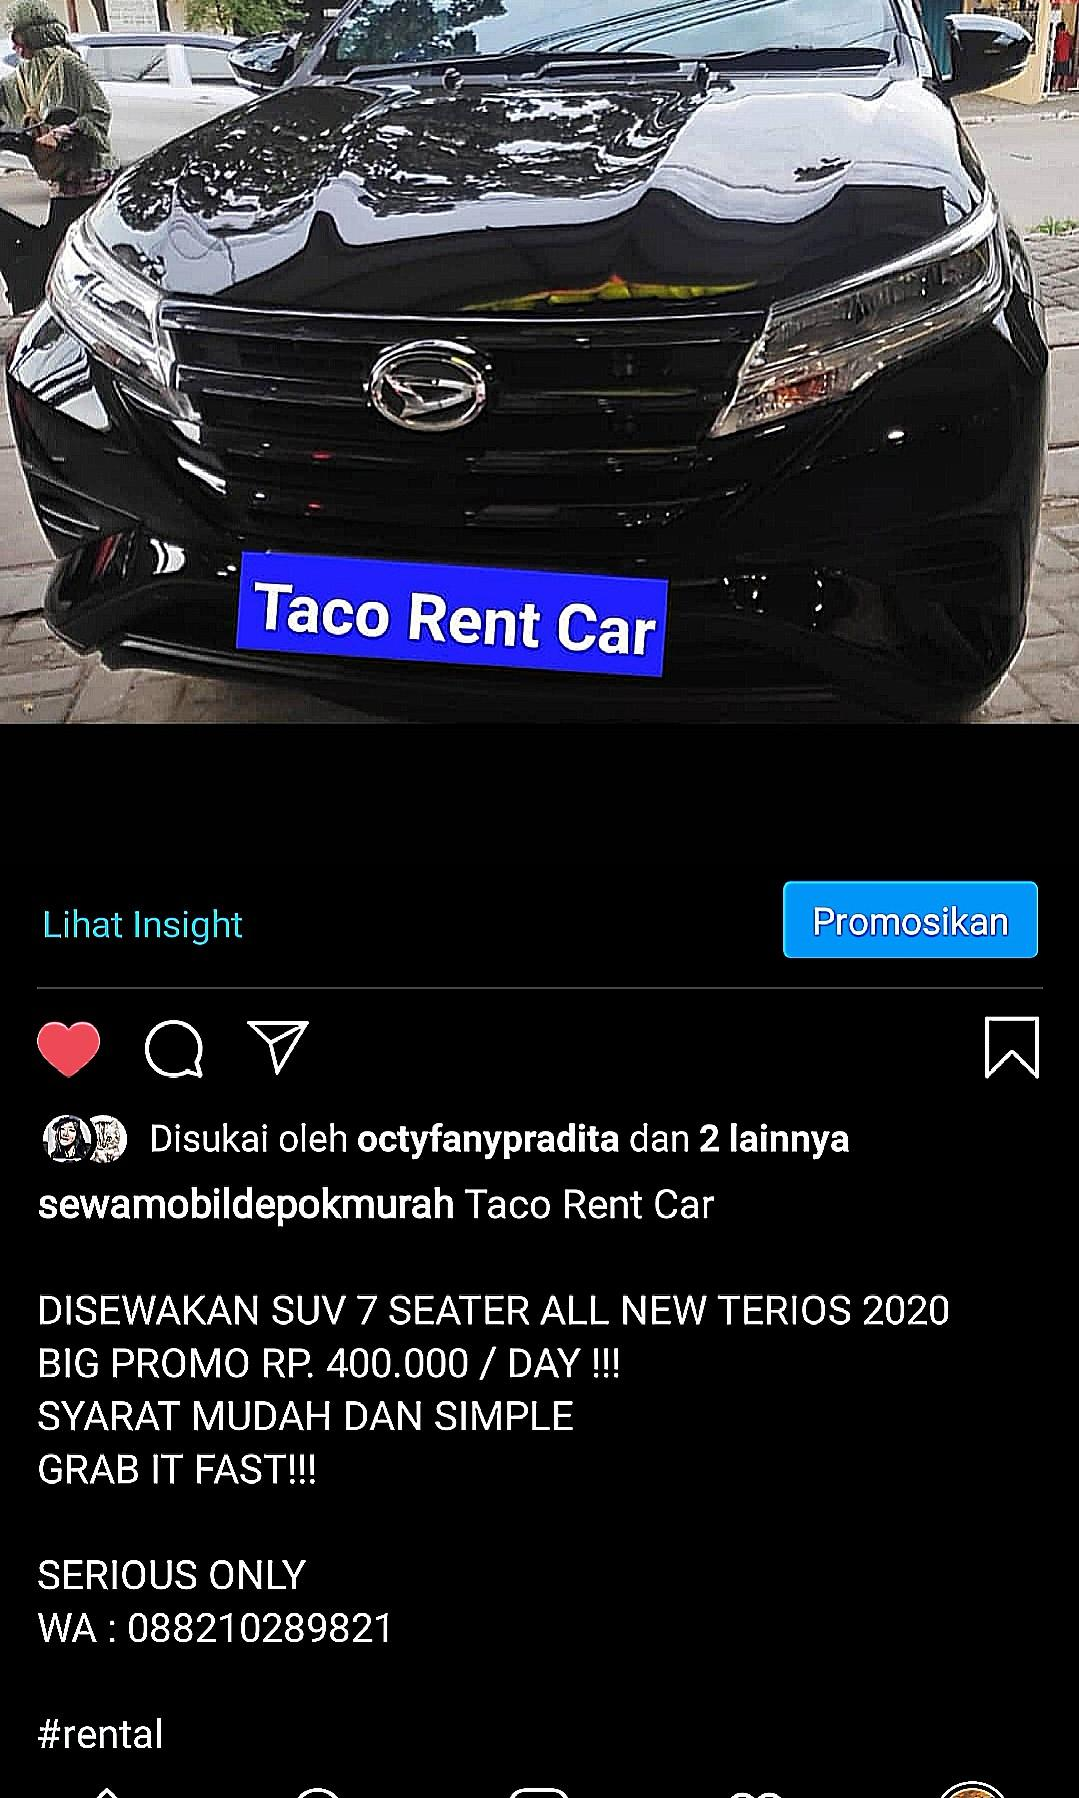 SEWA All New Terios 2020  CUMA 400 RIBU PERHARI